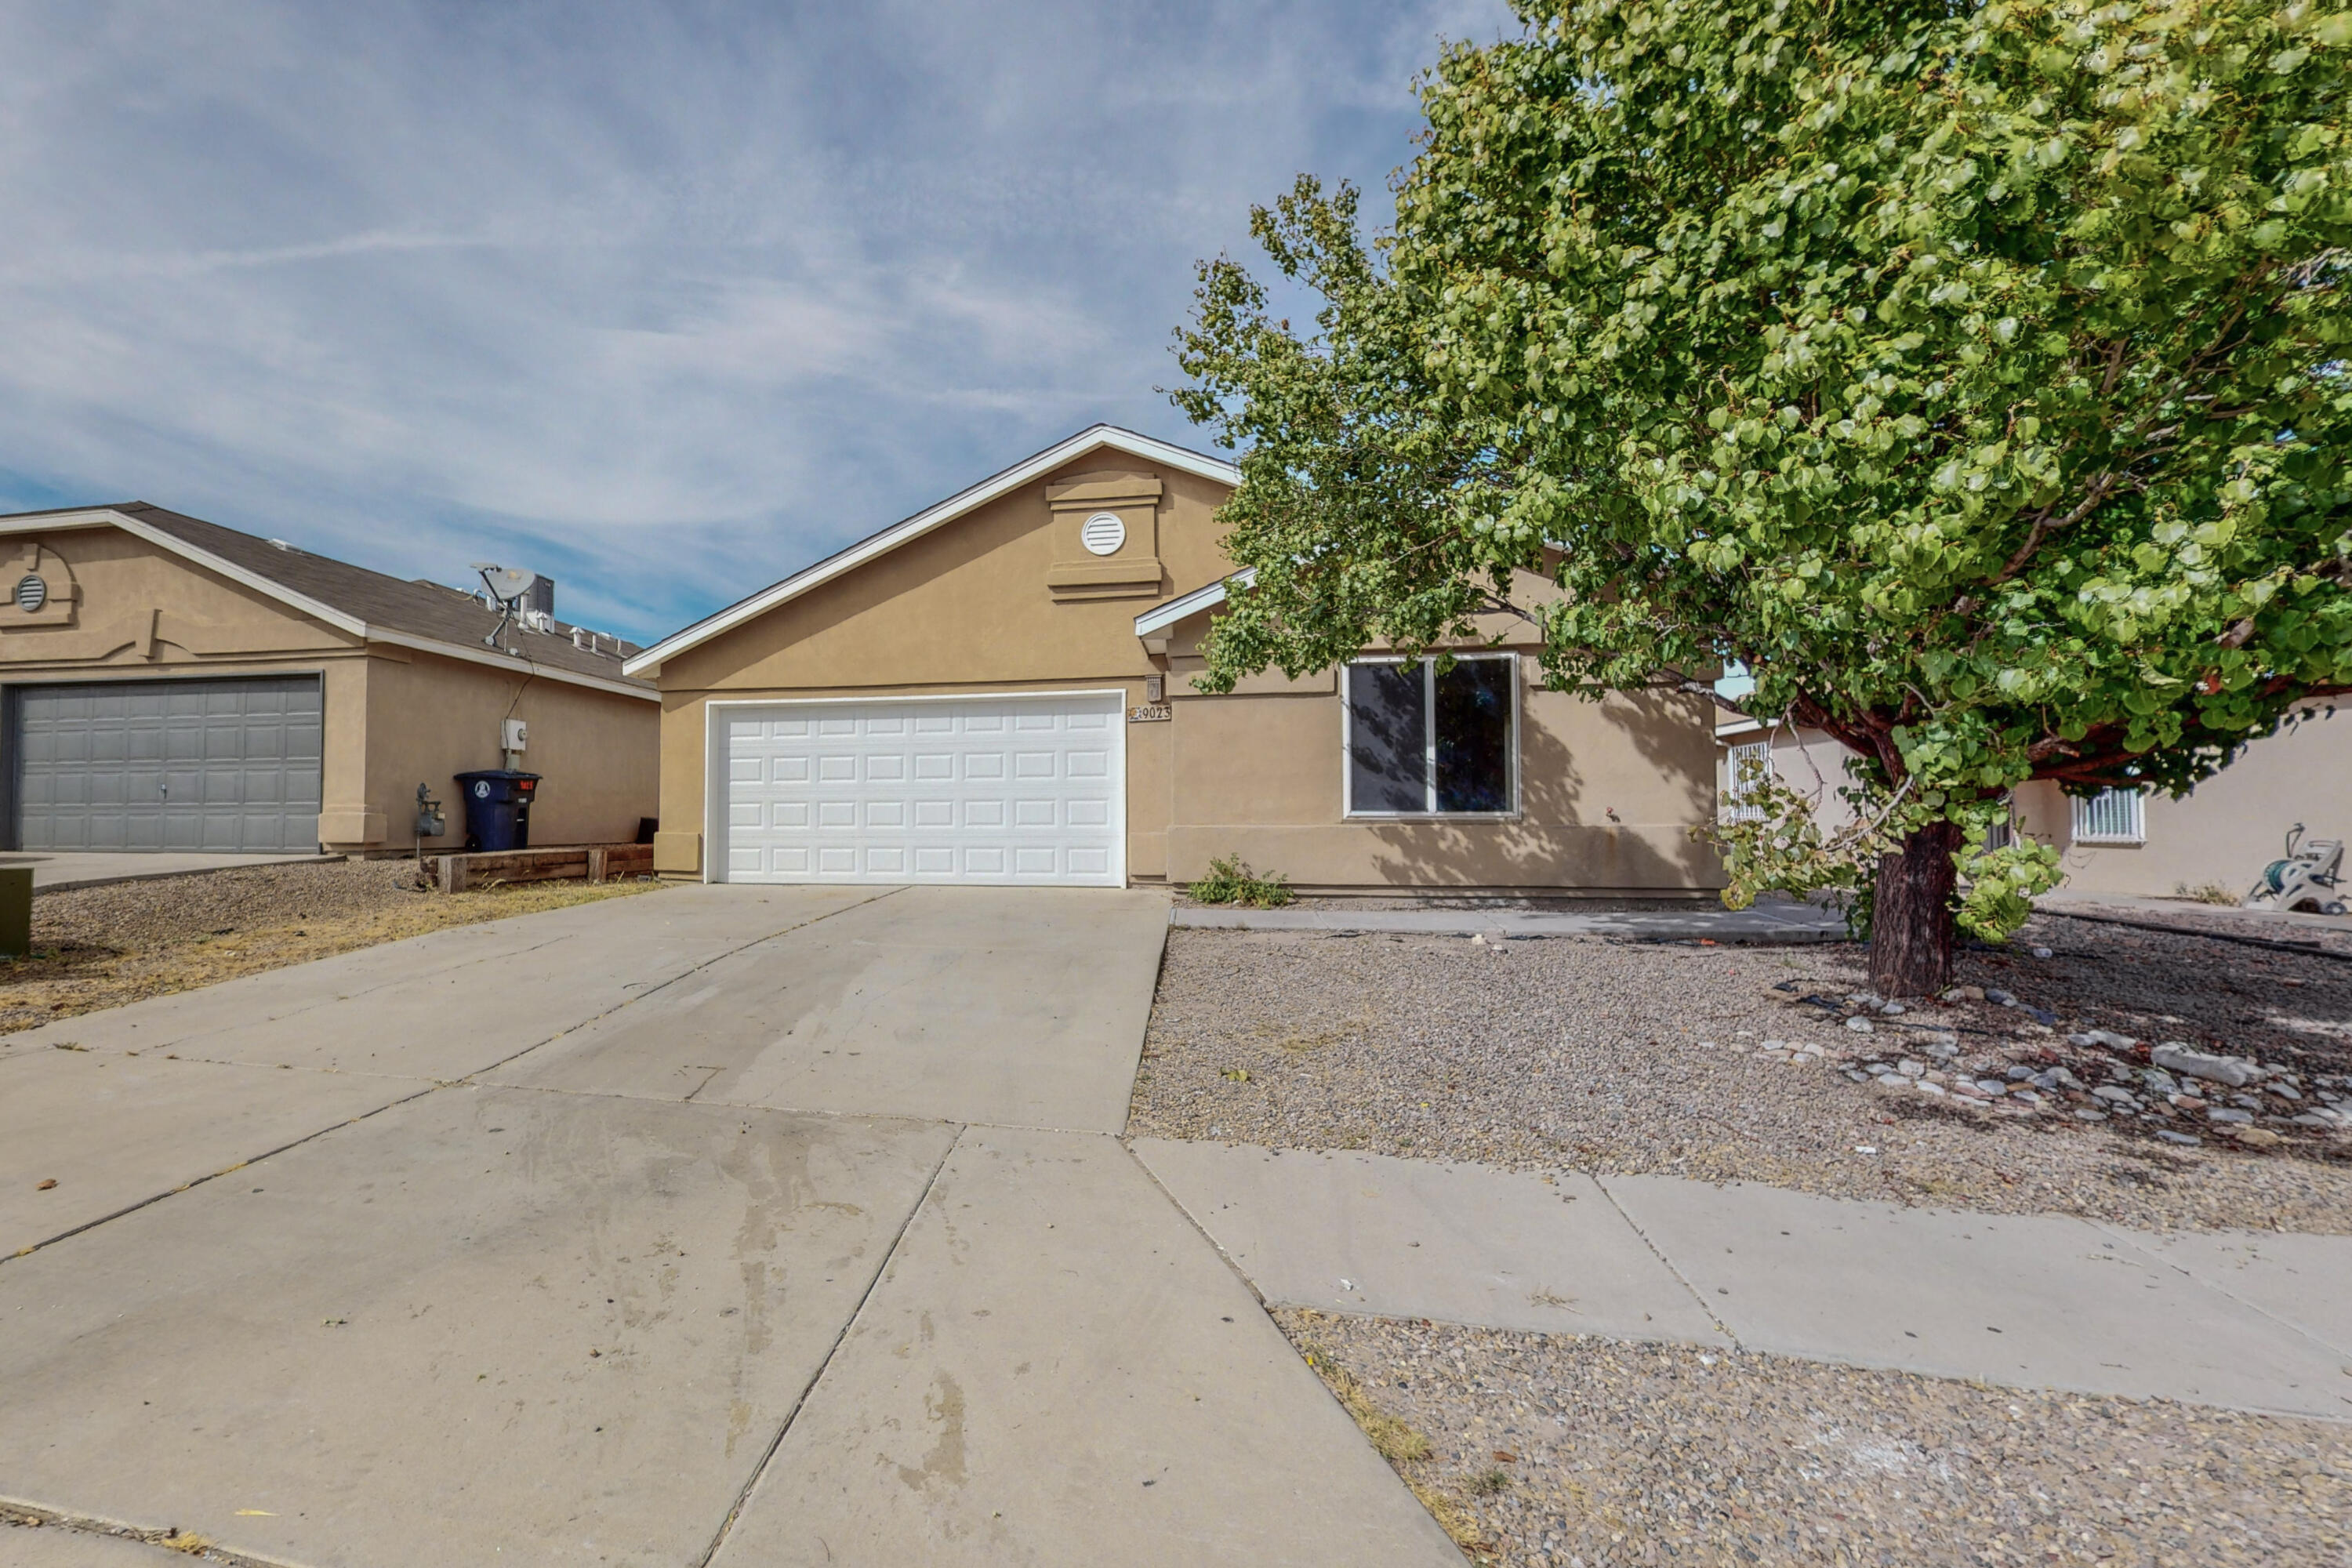 Come take a look at this fabulous single story 3 bedroom 2 bath home.  The home features great recent updates throughout including new flooring, counters, appliances with fresh paint.  This one is ready for you to move into.  Come take it look it will not last long.